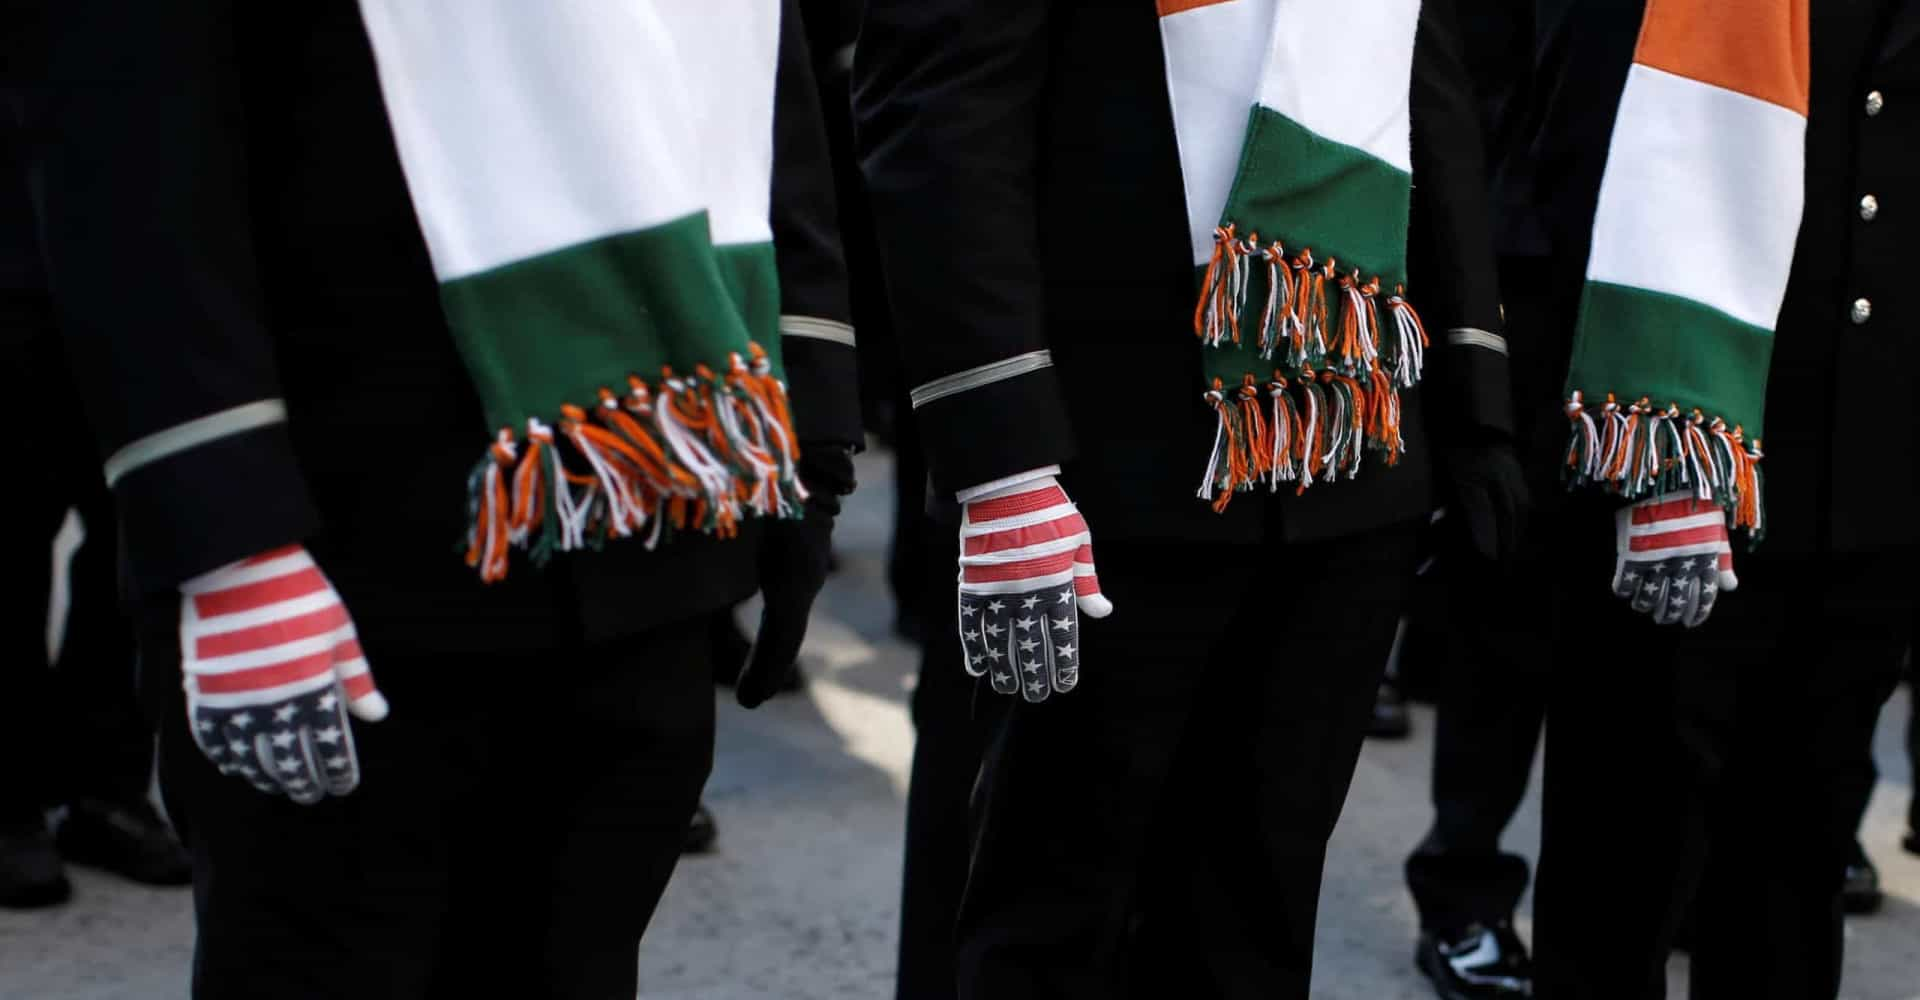 The remarkable impact of Irish-American culture on the USA